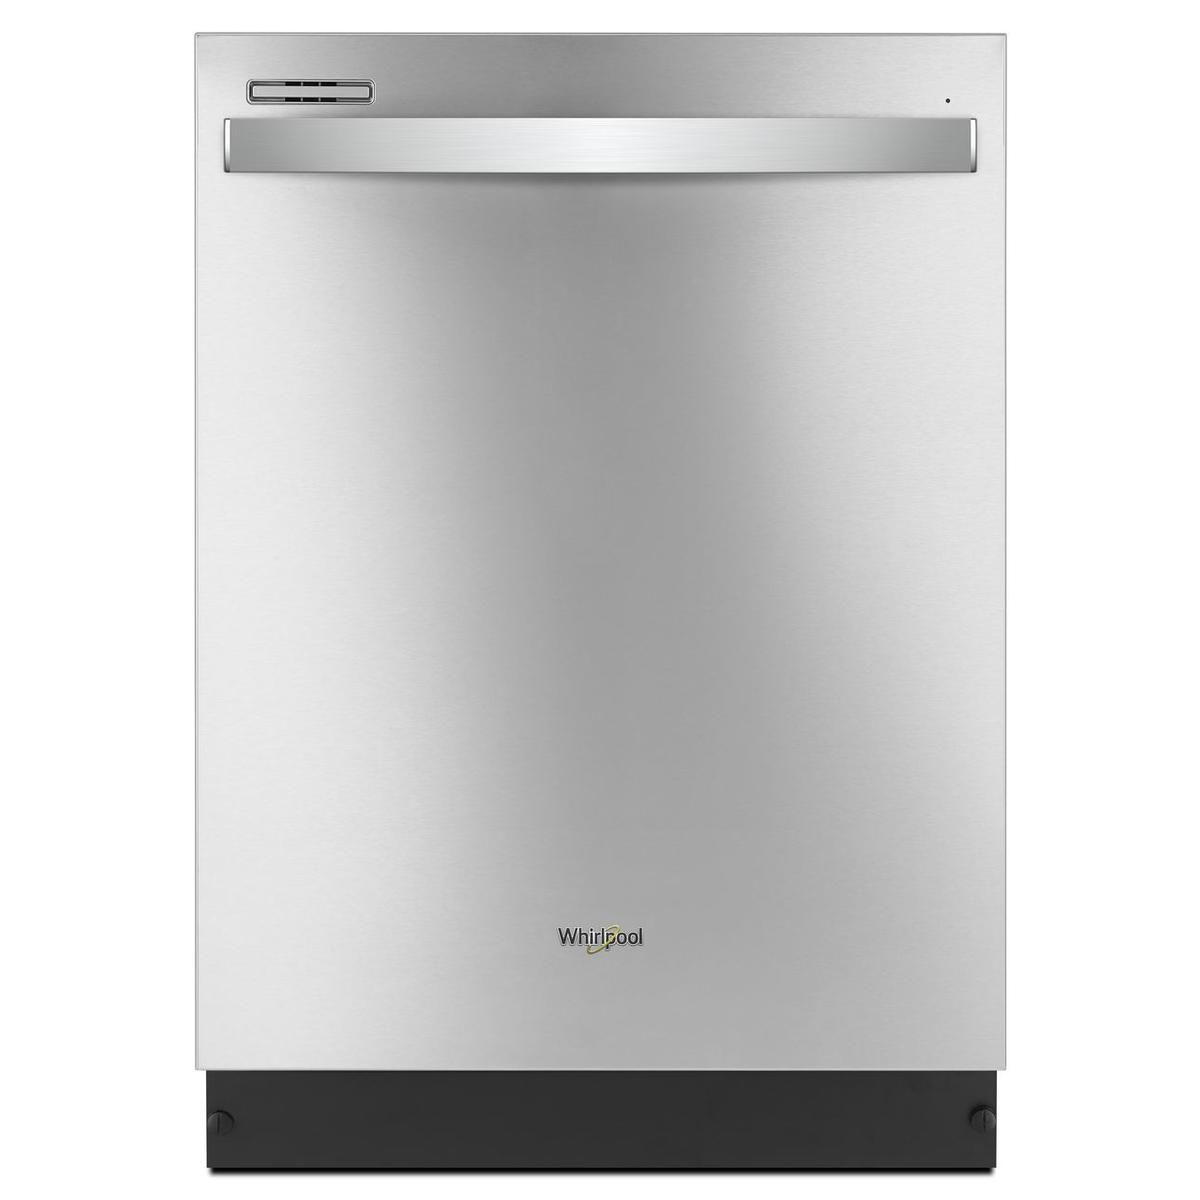 Whirlpool WDT710PAHZ 24-inch Dishwasher With Sensor Cycle